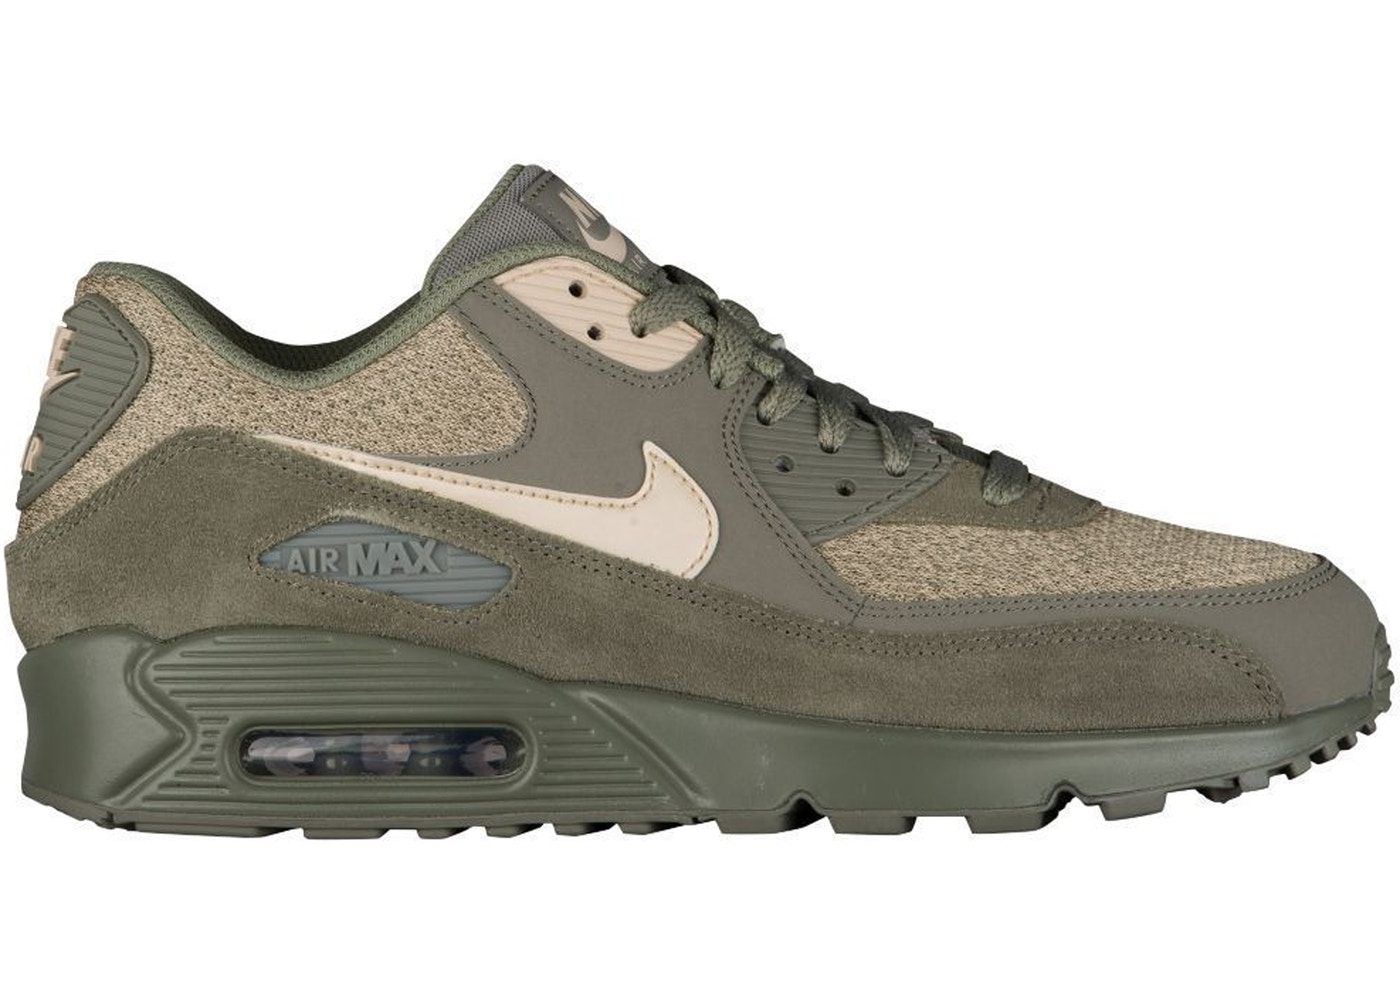 NIKE Men's Air Max 90 Dark StuccoOatmealMushroom Leather